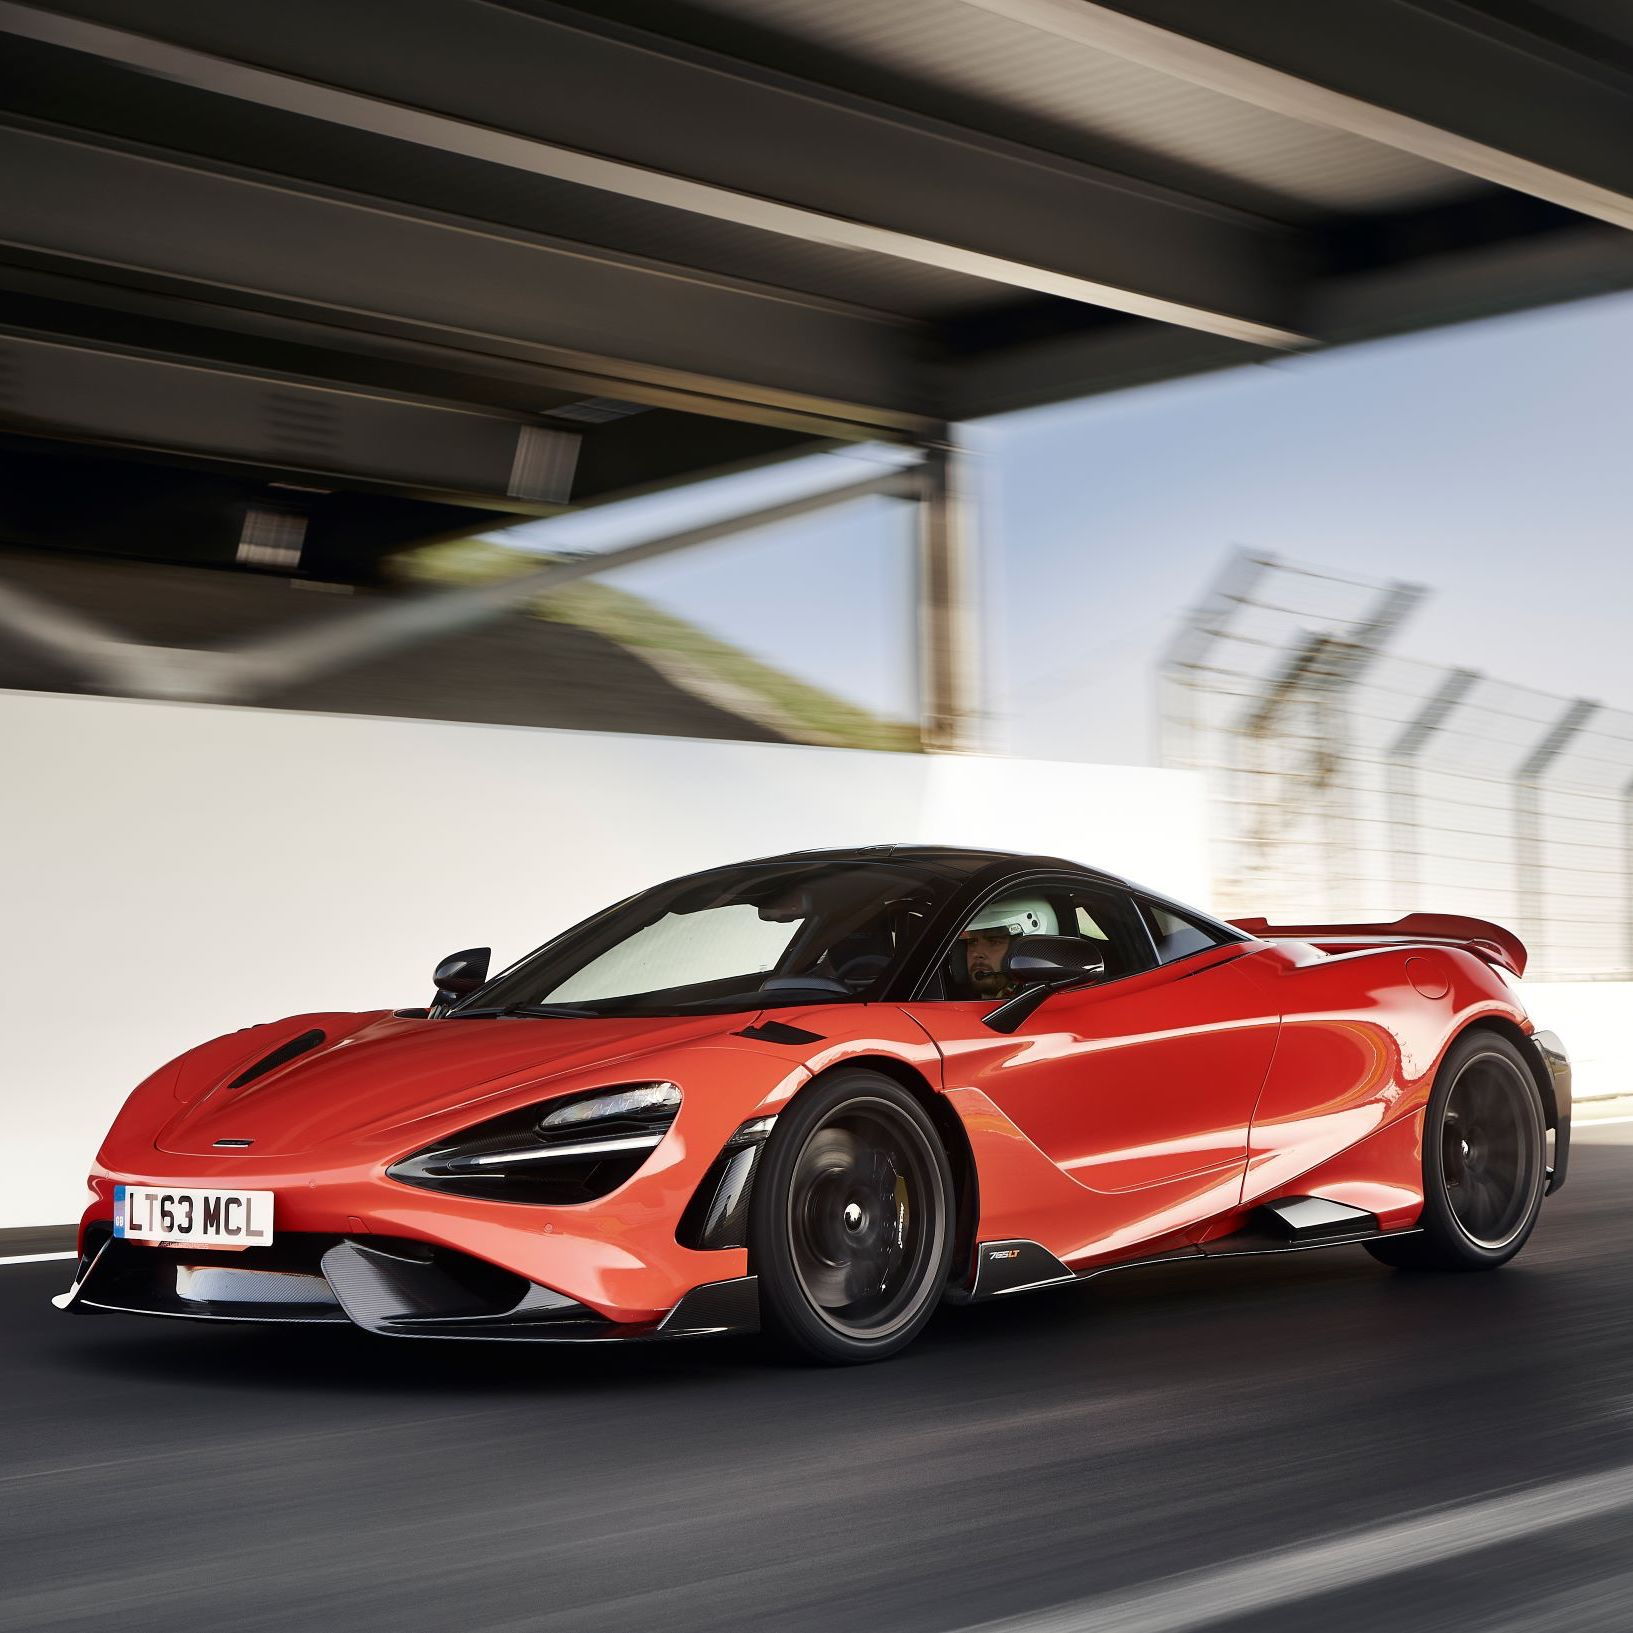 McLaren and Pirelli Automobile Photo from Pirelli